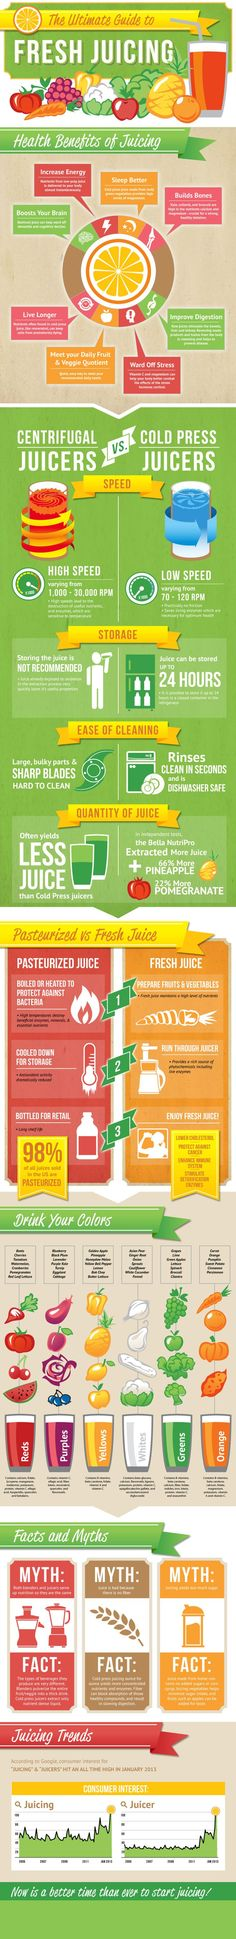 Fresh juicing